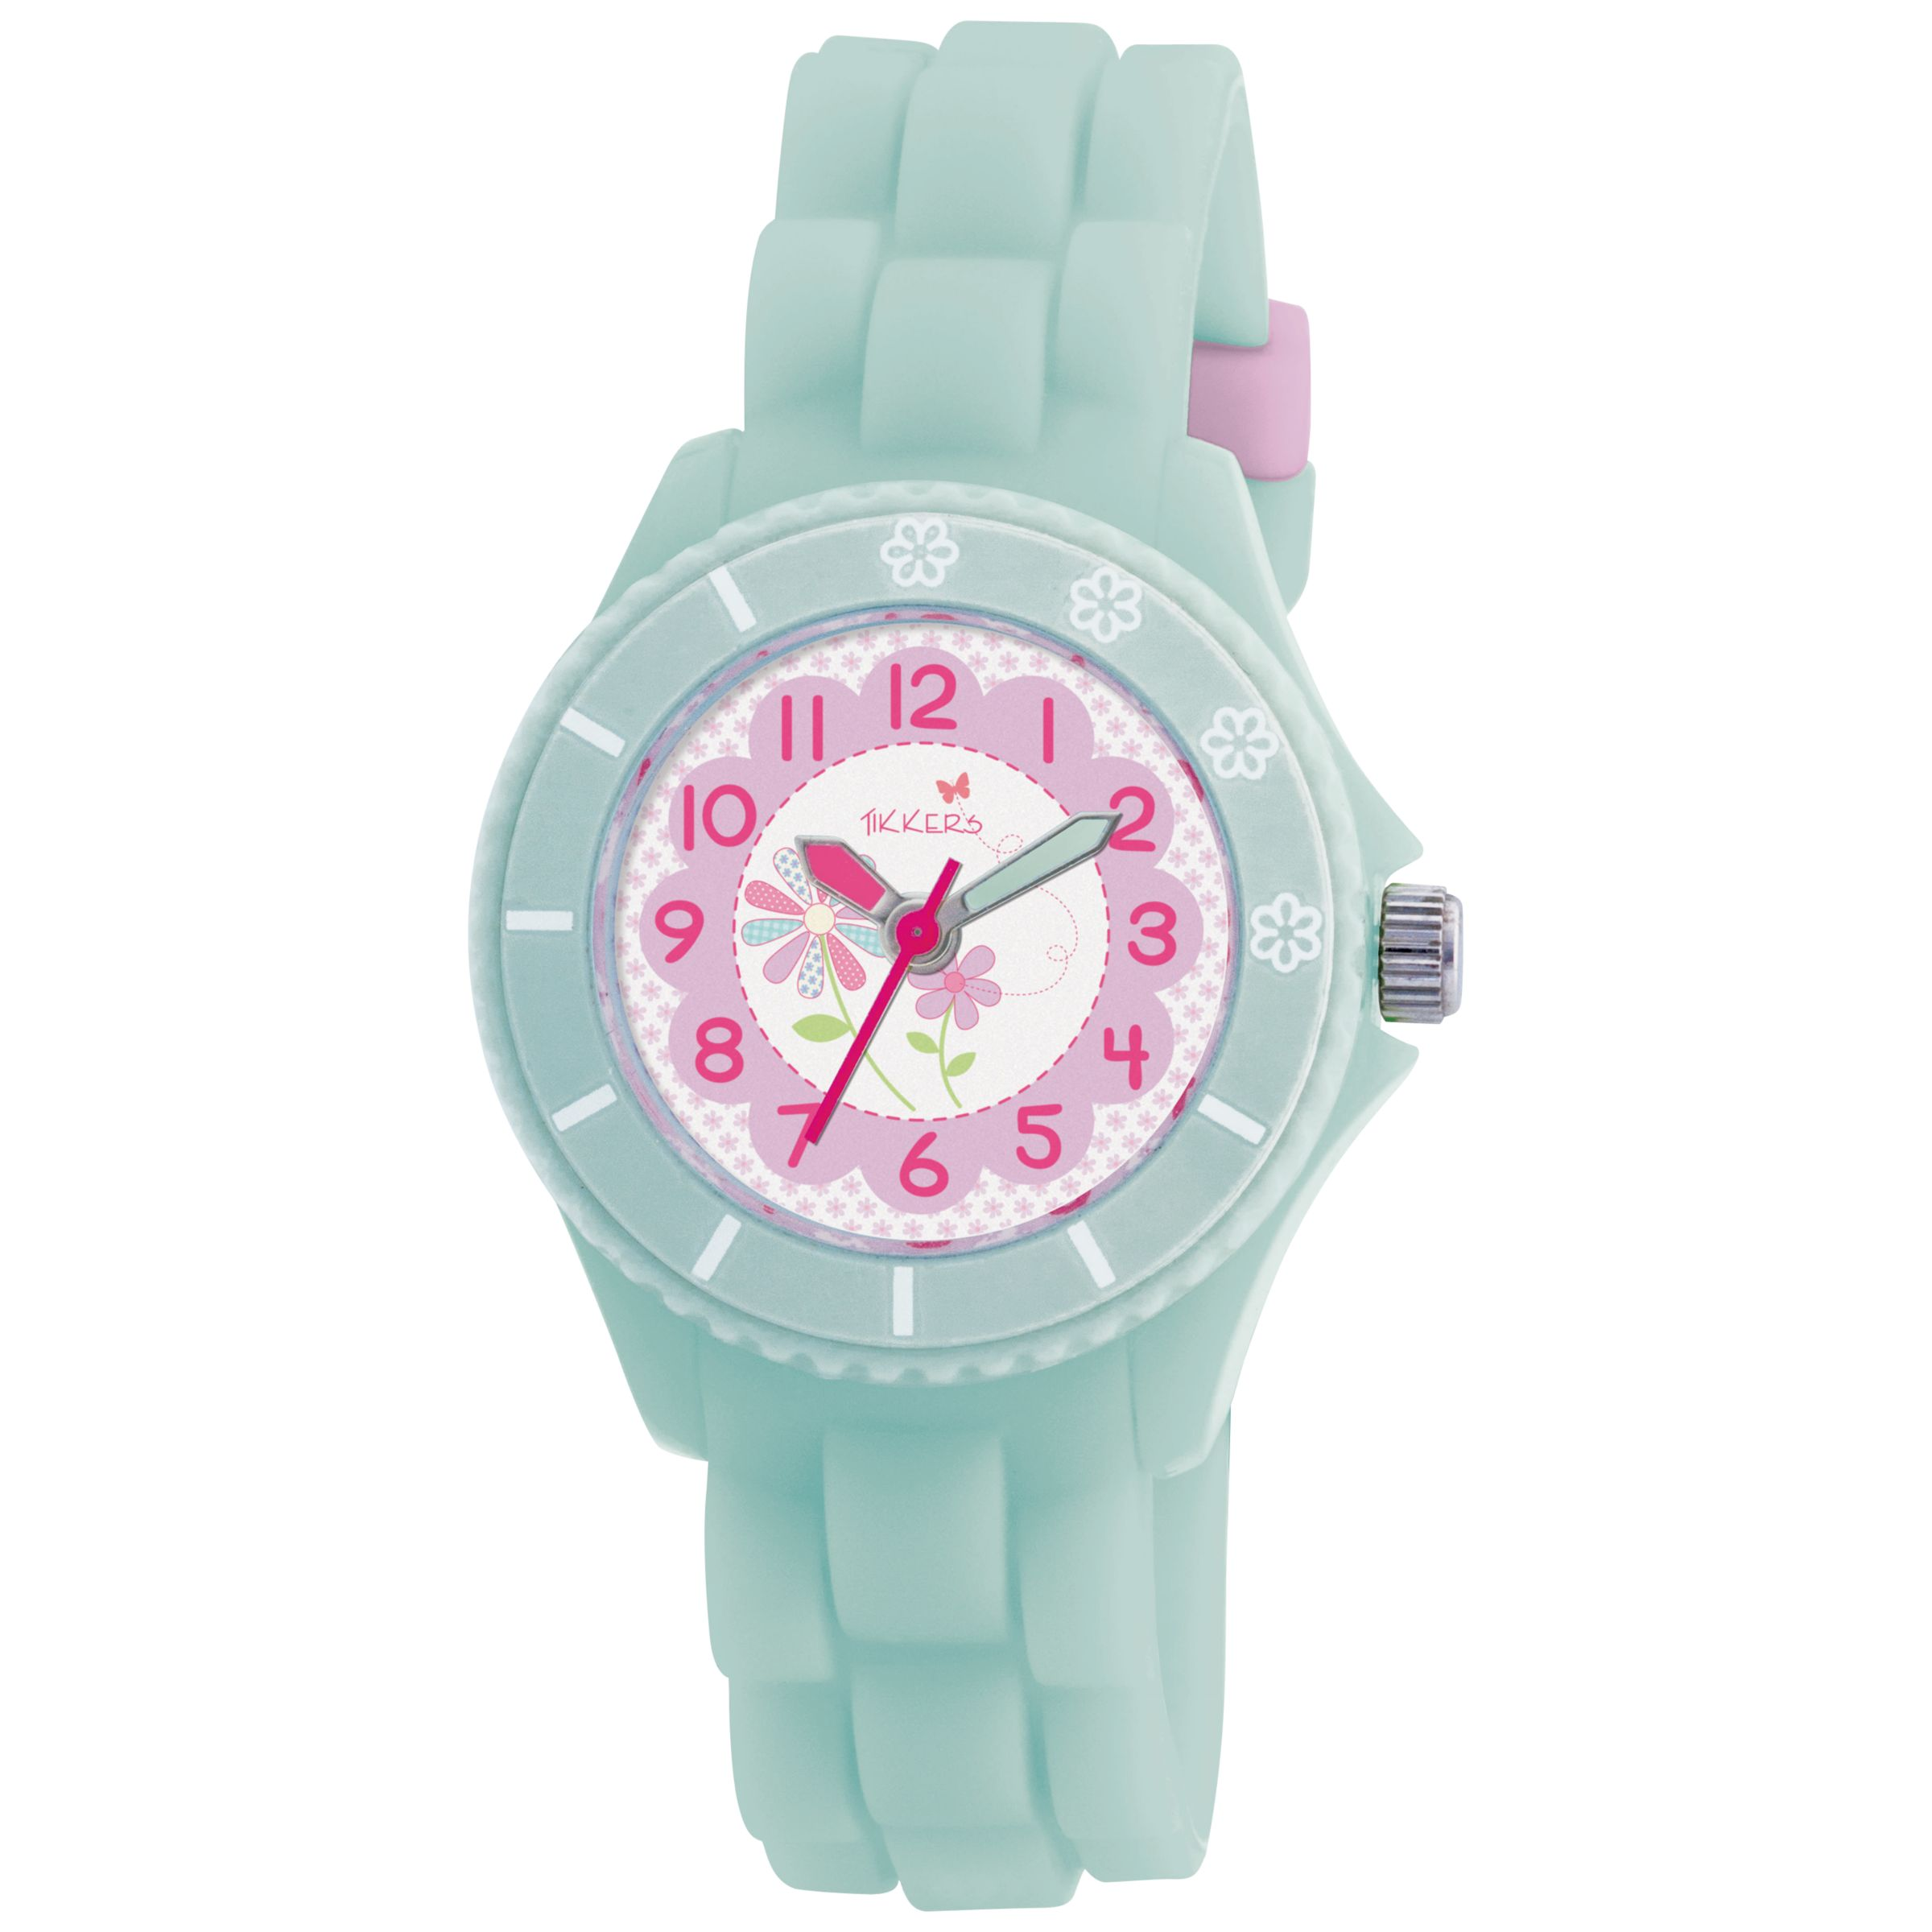 TK0021 Kids Flower Rubber Strap Watch, Teal